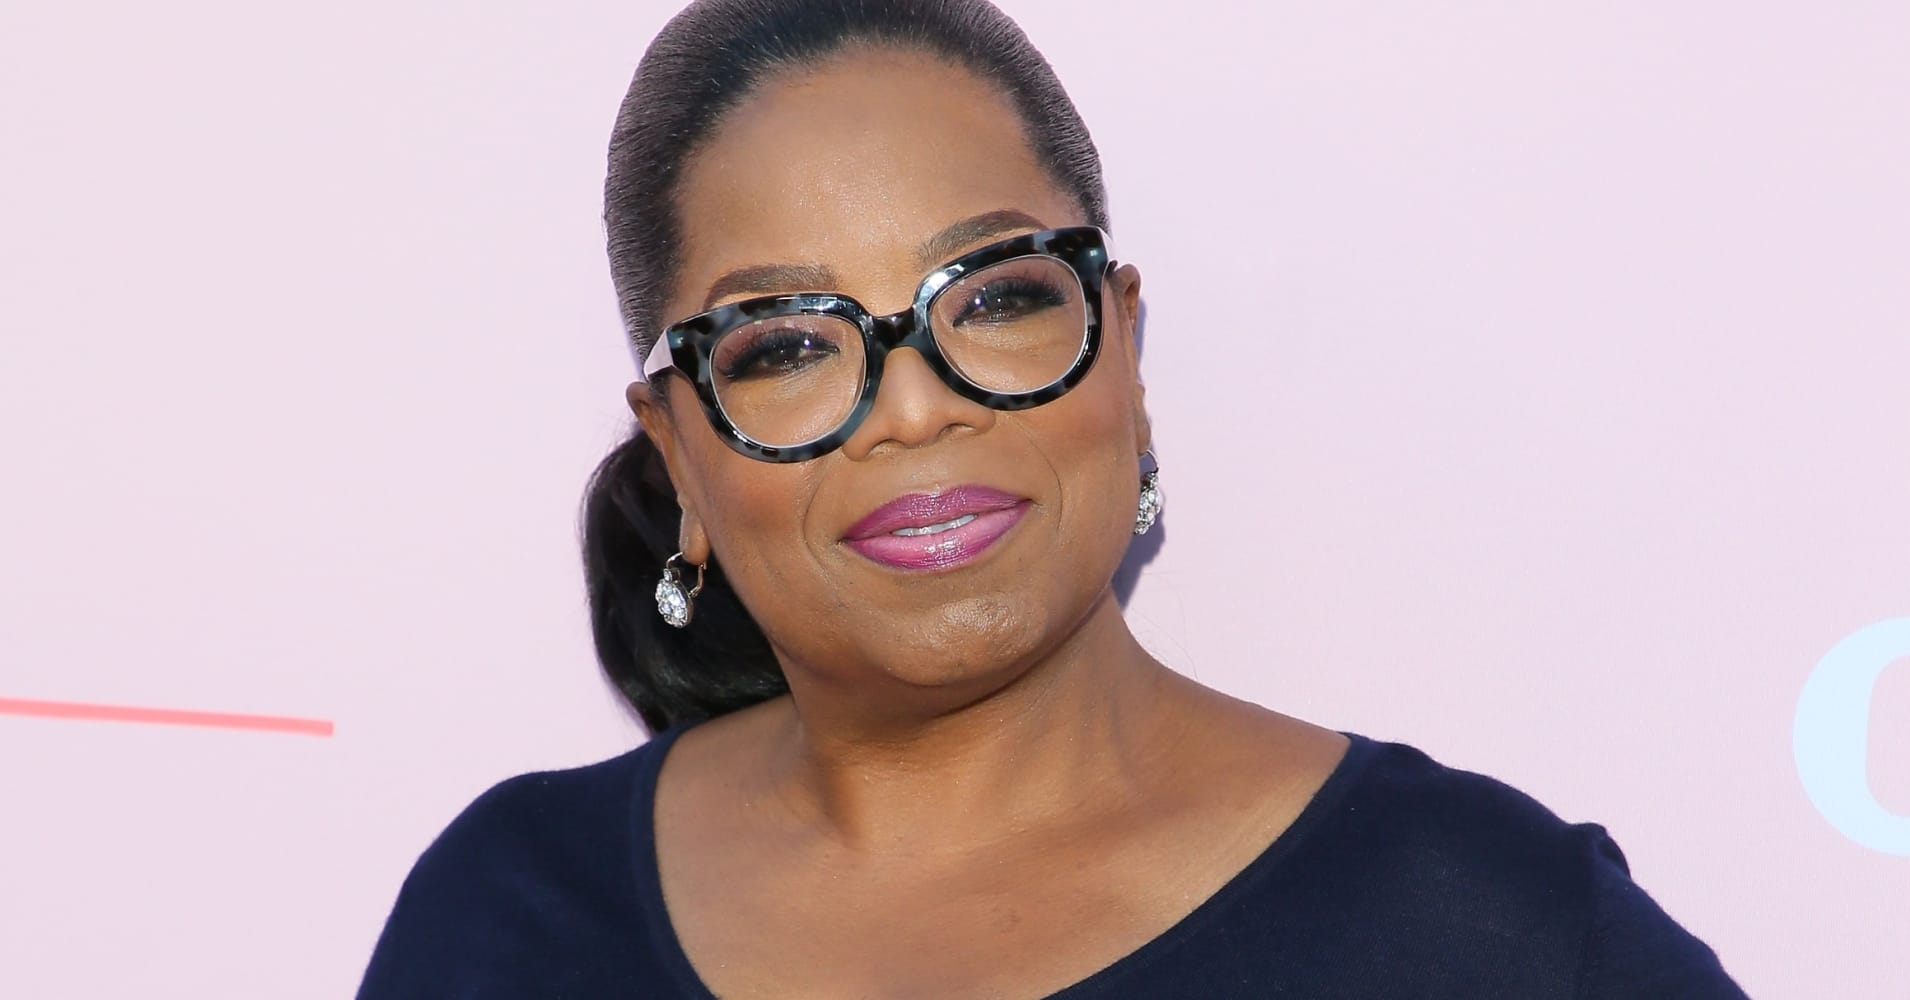 Oprah Winfrey attends the Los Angeles premiere of OWN's 'Love Is_' held at NeueHouse Hollywood on June 11, 2018 in Los Angeles, California. (Photo by JB Lacroix/WireImage)